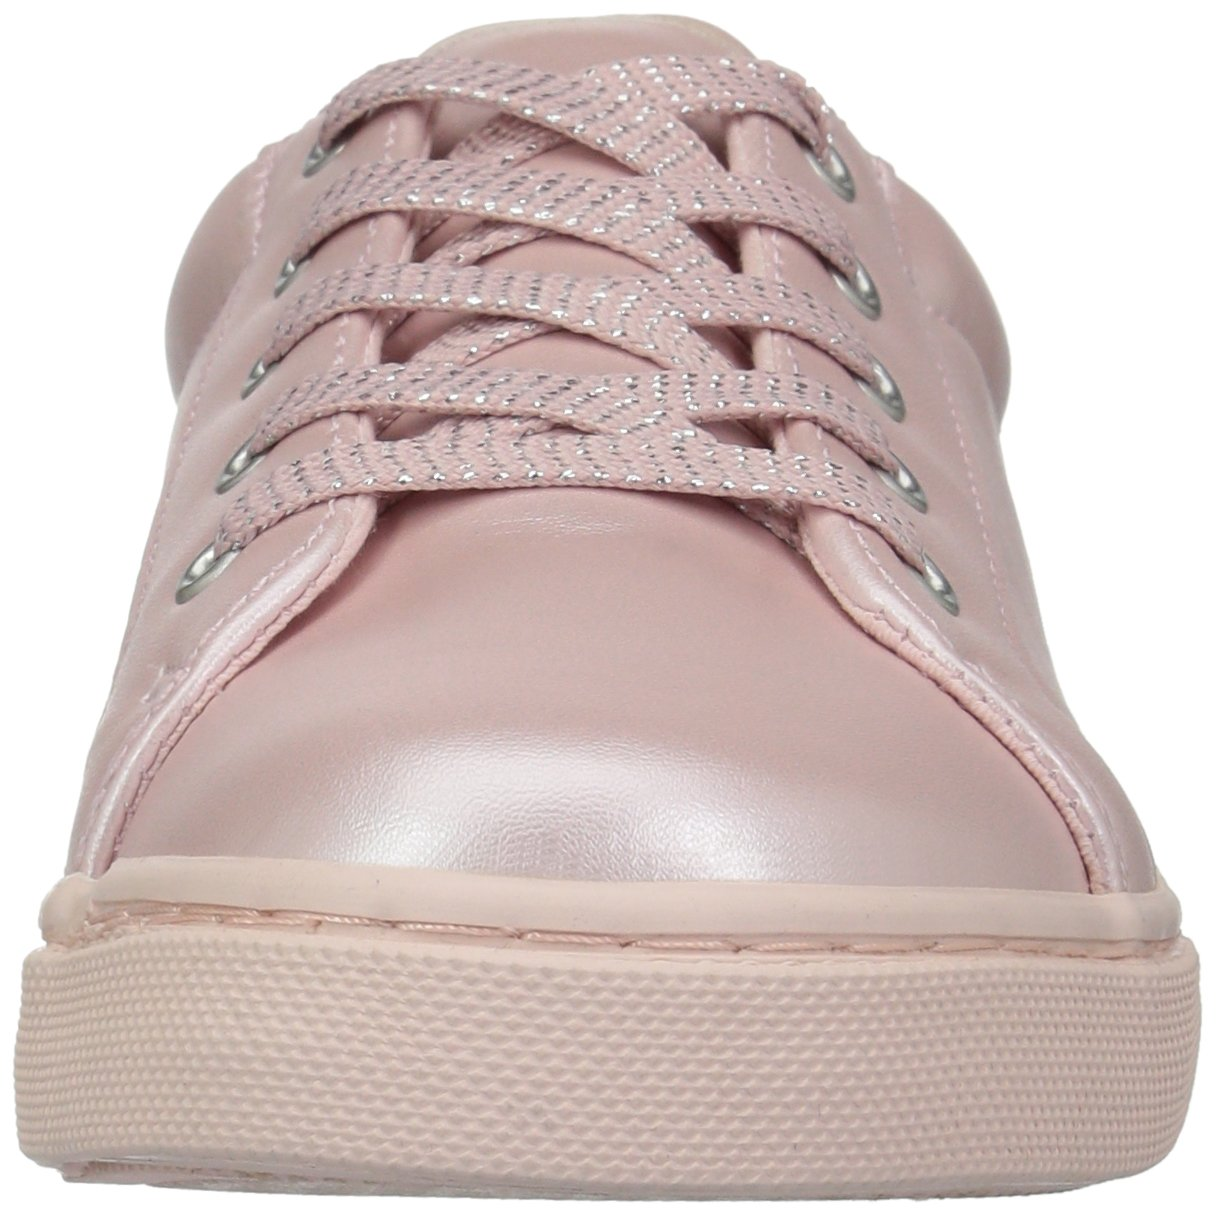 The Children's Place Girls' BG Emoji Sneaker, Pink, Youth 4 Medium US Big Kid by The Children's Place (Image #4)